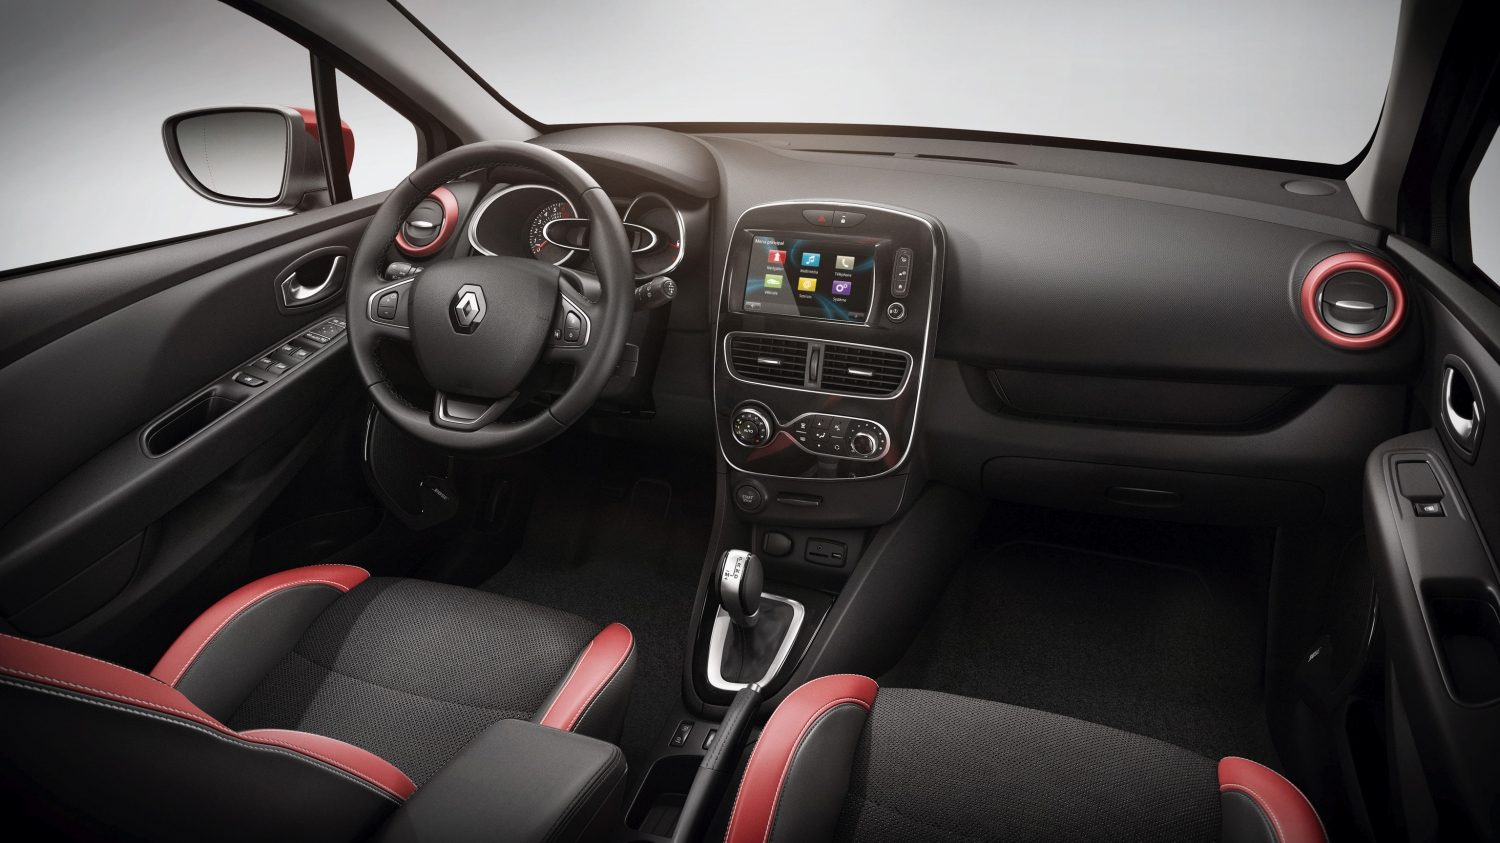 renault-clio-estate-k98-ph2-design-interior-gallery-001.jpg.ximg.l_full_m.smart.jpg